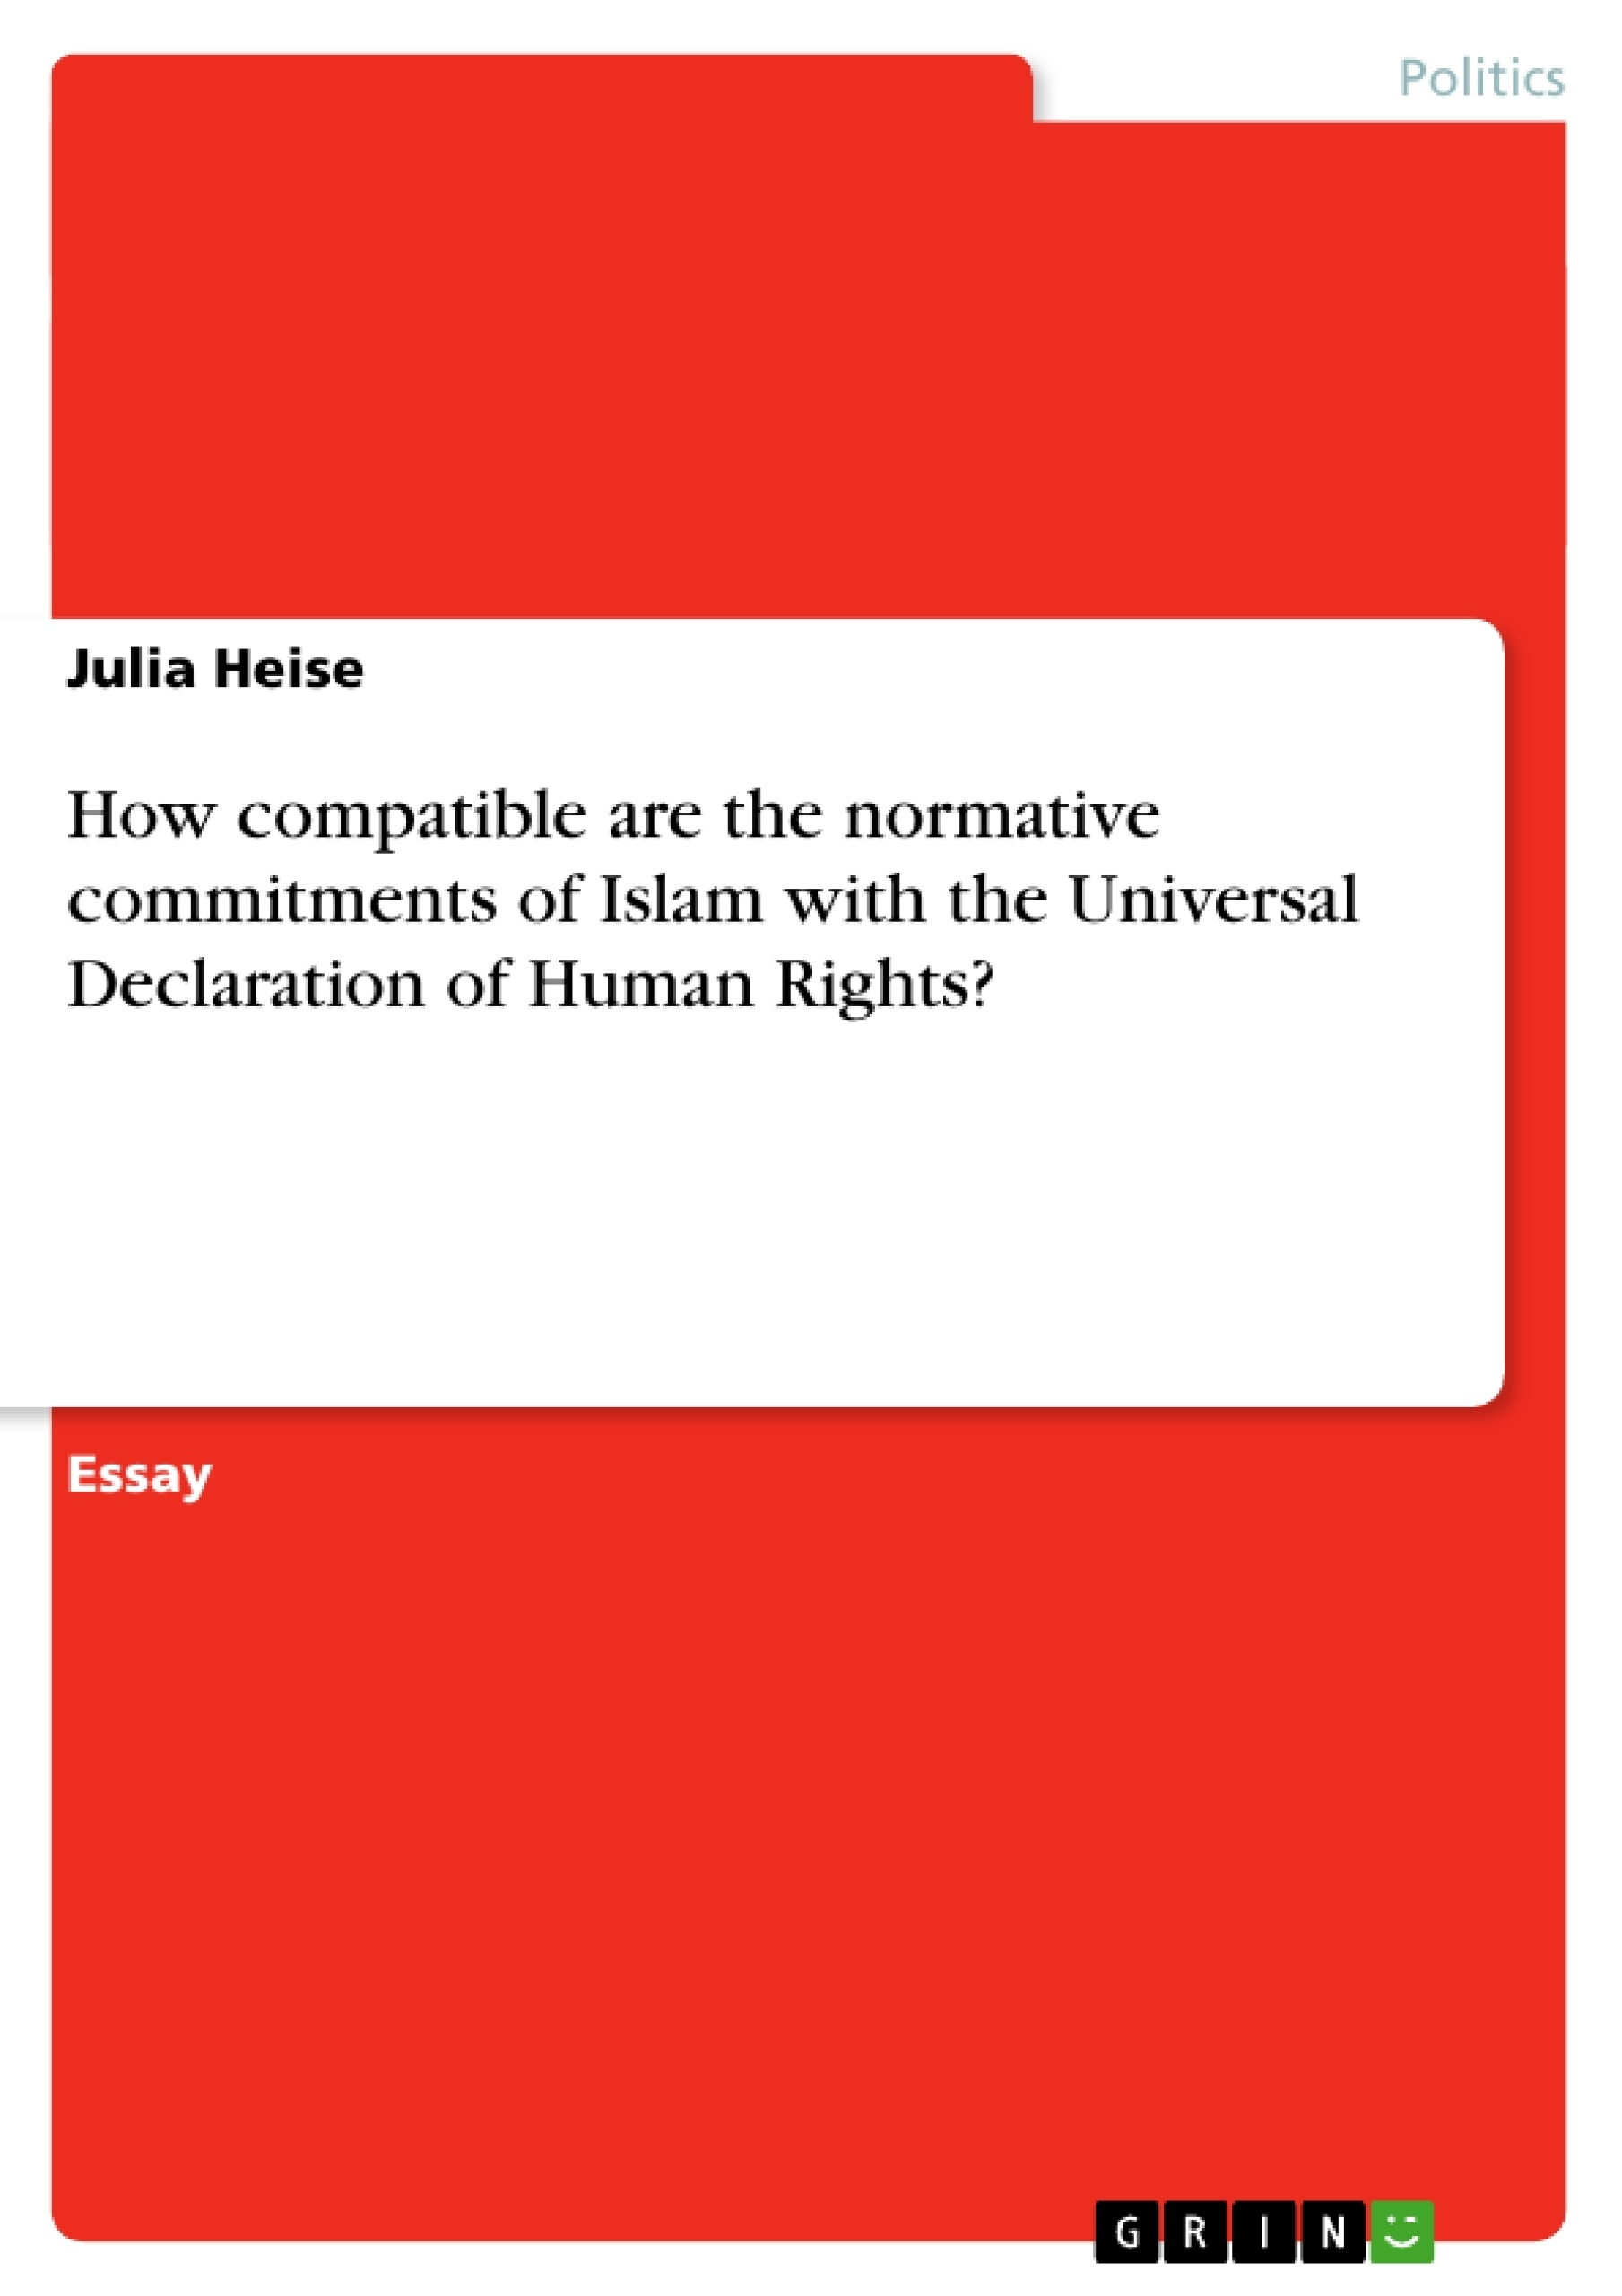 Title: How compatible are the normative commitments of Islam with the Universal Declaration of Human Rights?